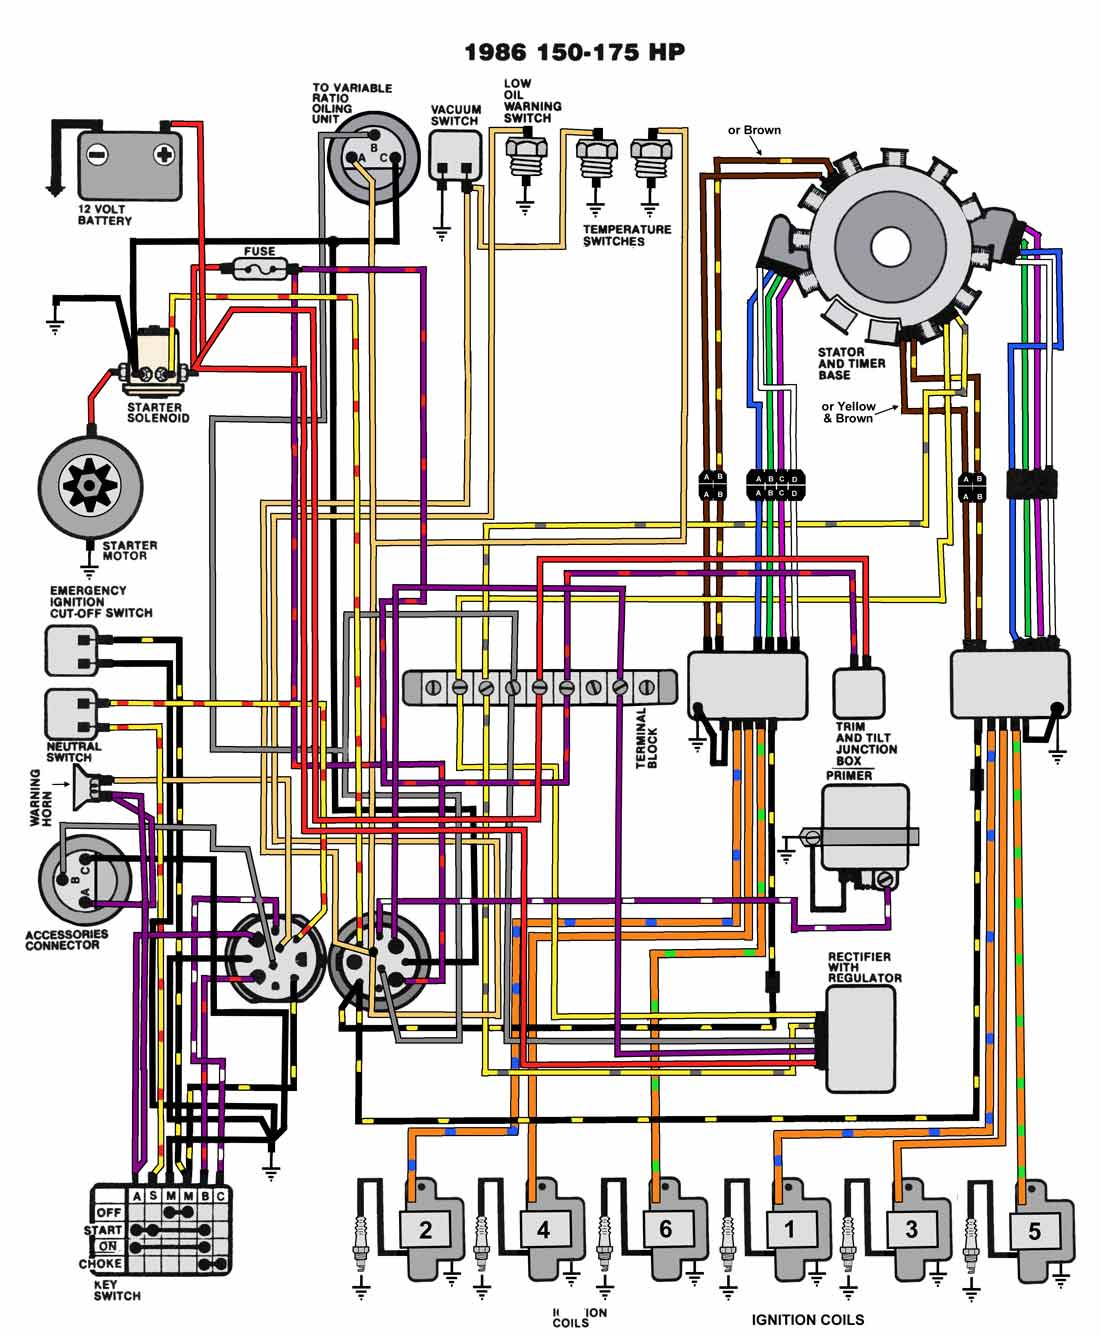 1986_150_175 mastertech marine evinrude johnson outboard wiring diagrams wiring diagram for johnson outboard motor at mifinder.co